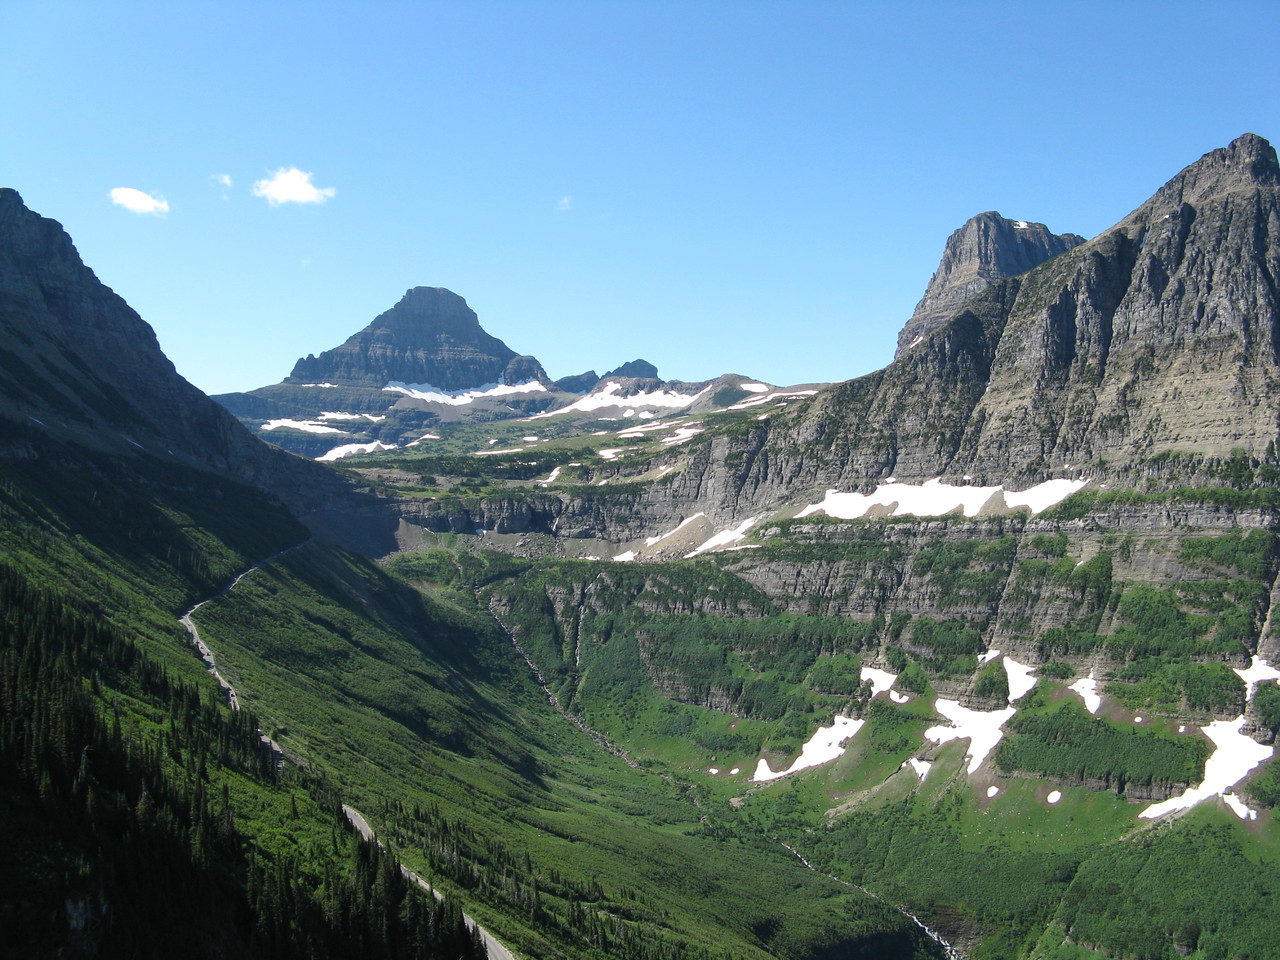 A look back at Clements Mountain and Logan Pass.  The Goint-to-the-Sun road is evident on the mountainside.